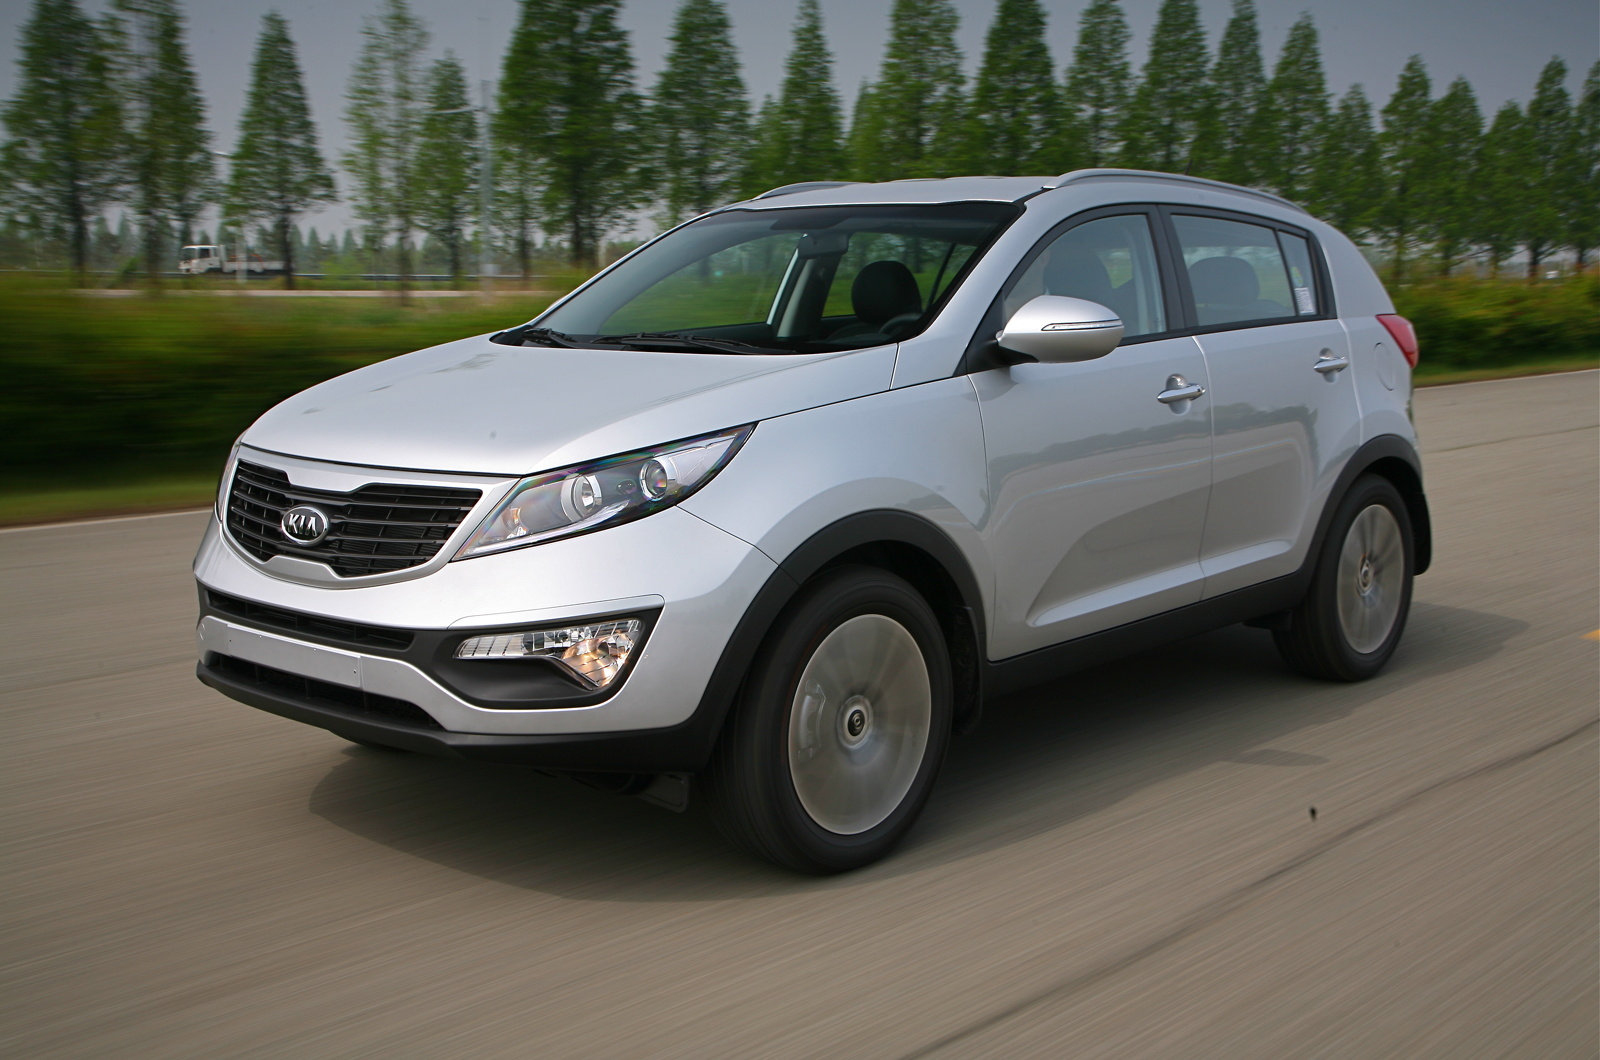 kia sportage 2 0 crdi 4x4 photos and comments. Black Bedroom Furniture Sets. Home Design Ideas